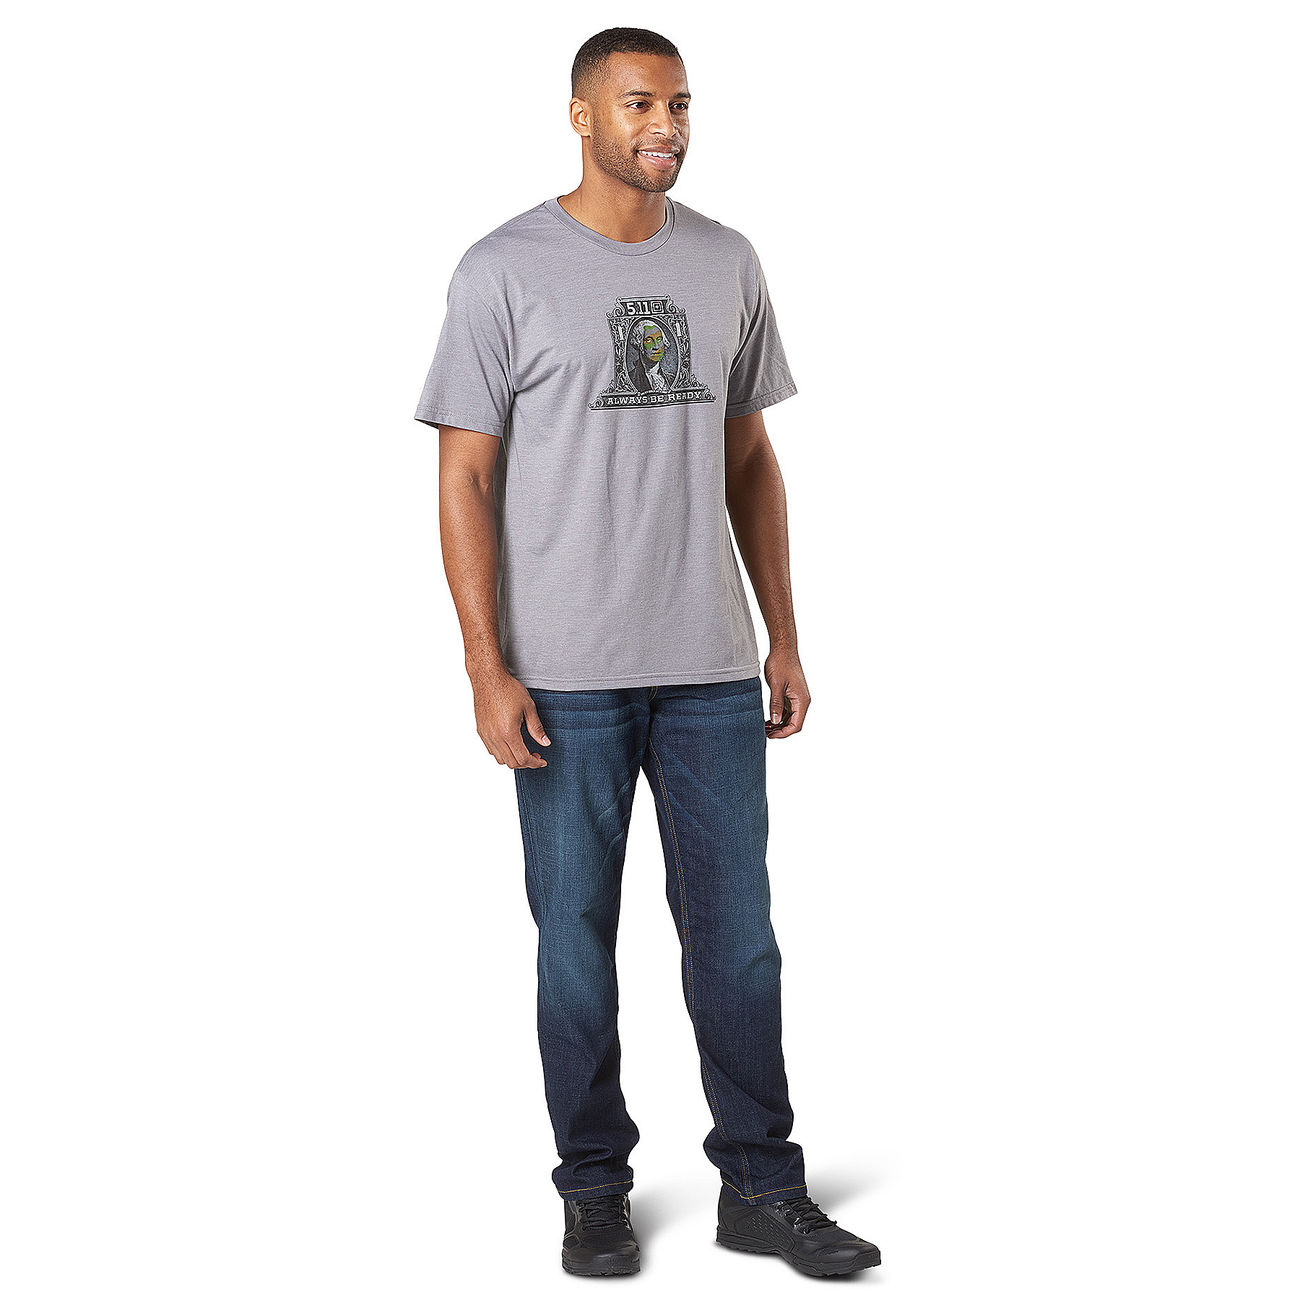 5.11 T-Shirt George Tactical Tee grey heather 2